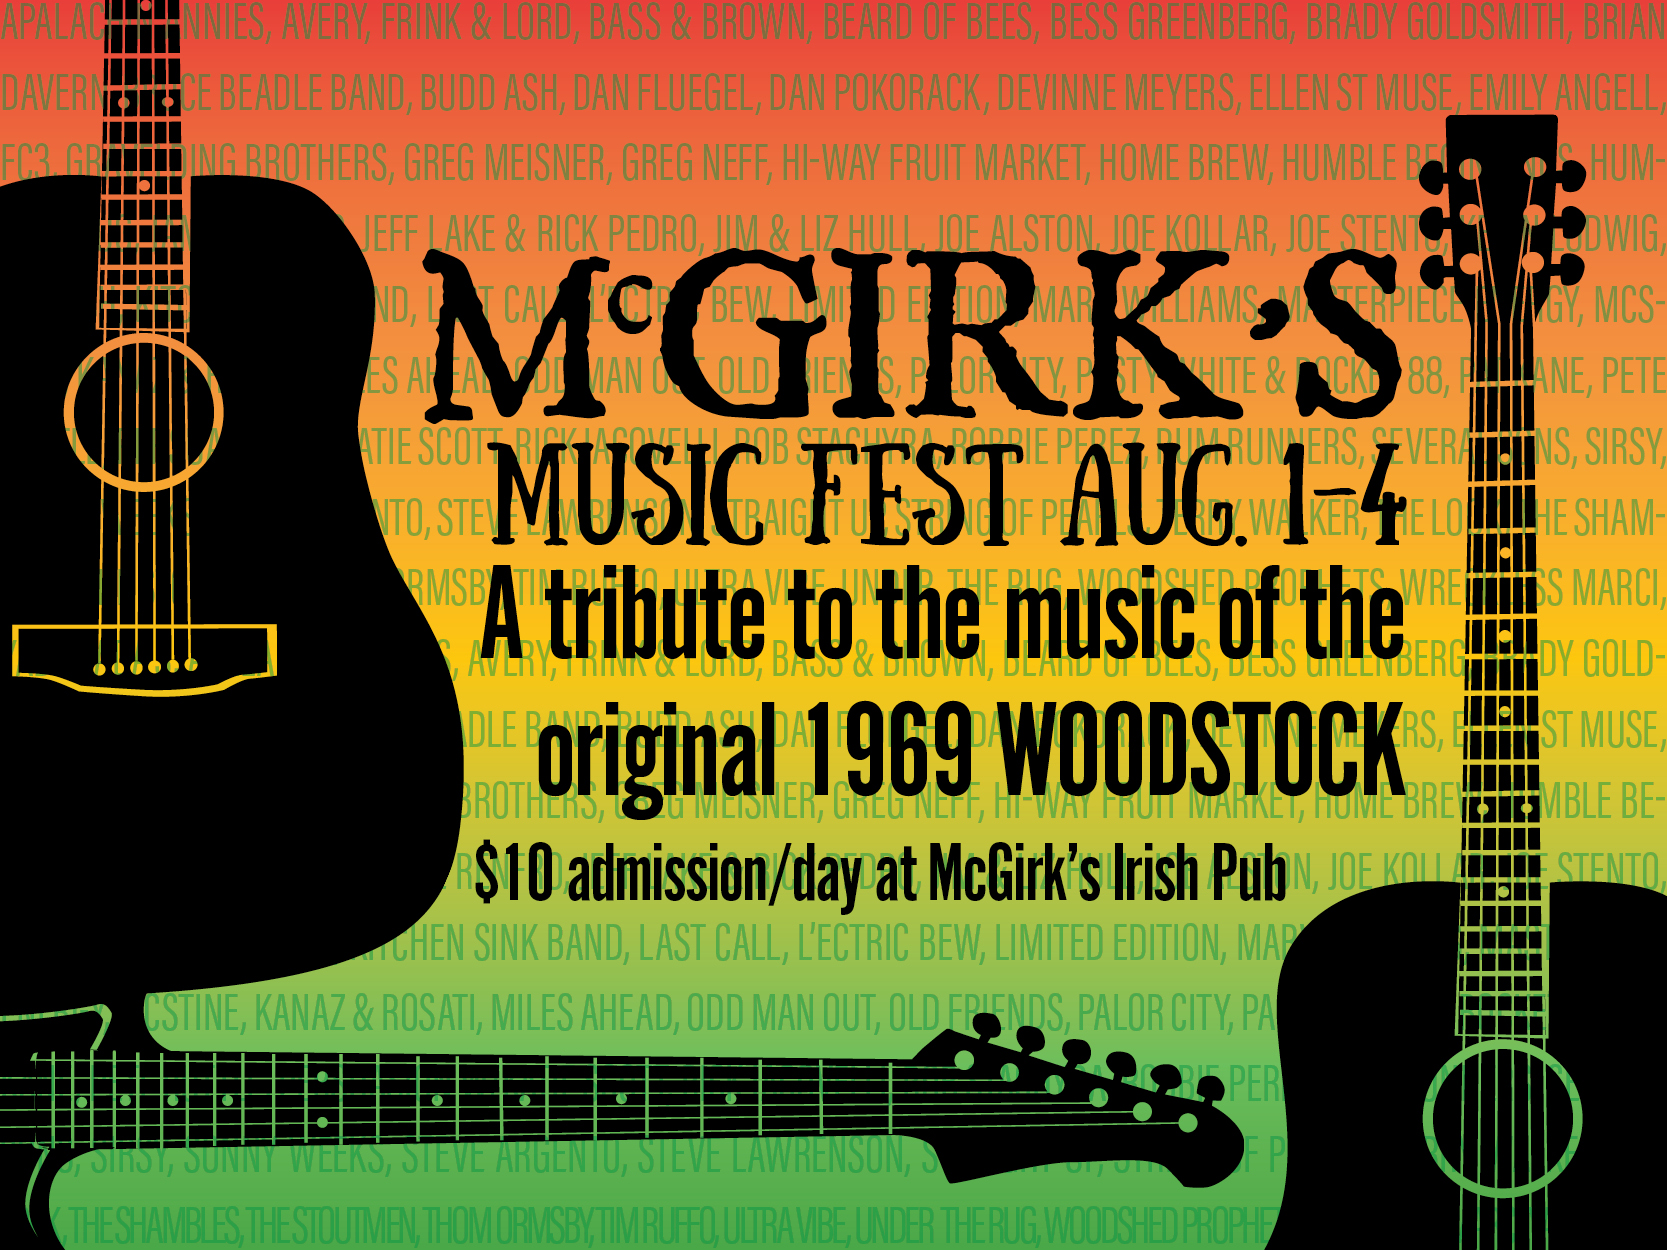 Special Events at McGirk's - McGirk's Irish Pub | Binghamton, NY